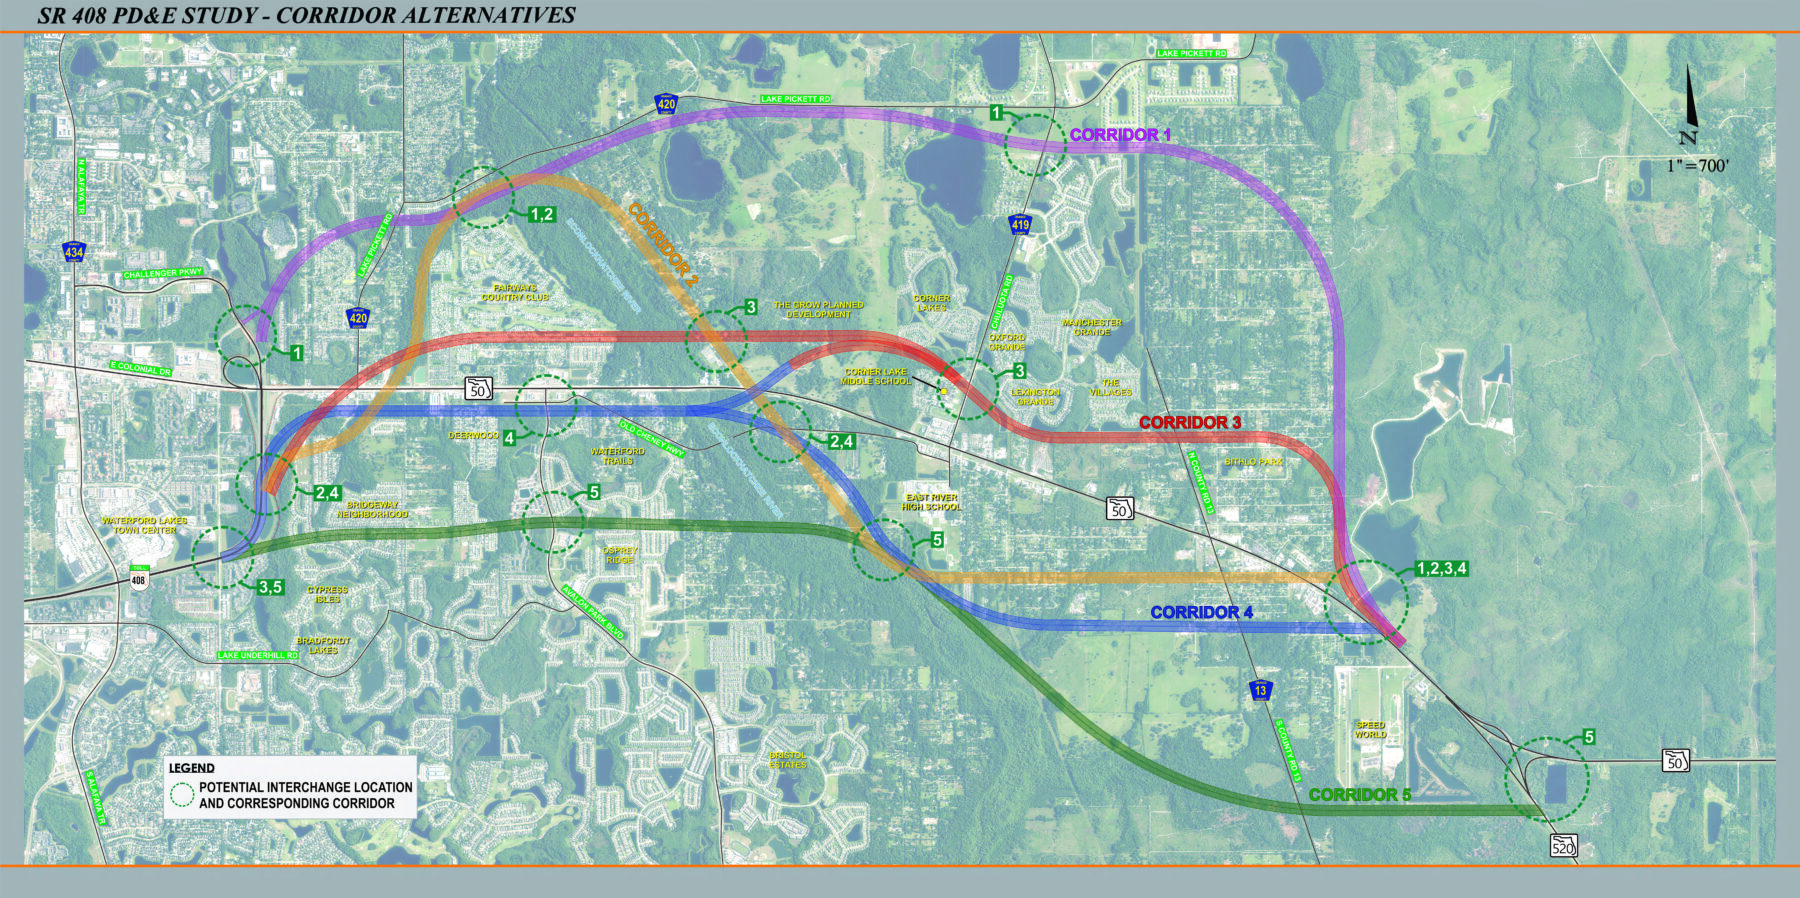 State Road 408 Eastern Extension PD&E Study possible corridors